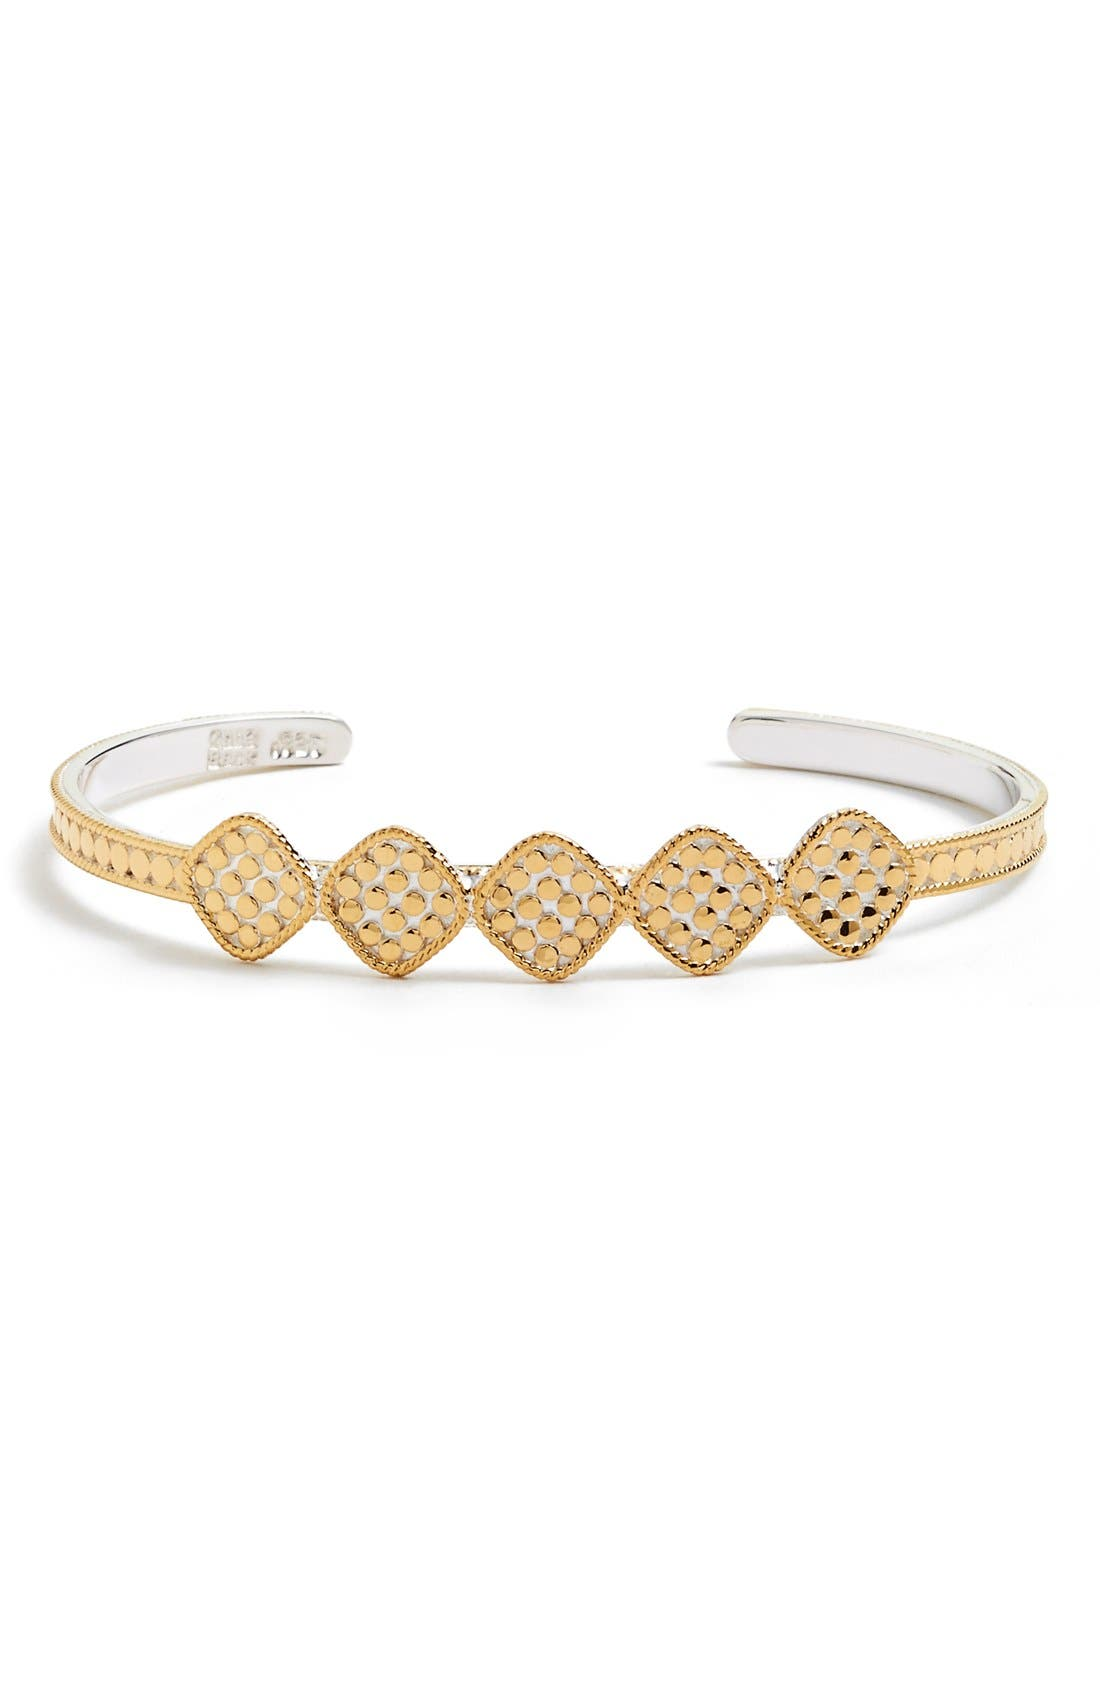 ANNA BECK 'Gili' Cushion Skinny Cuff